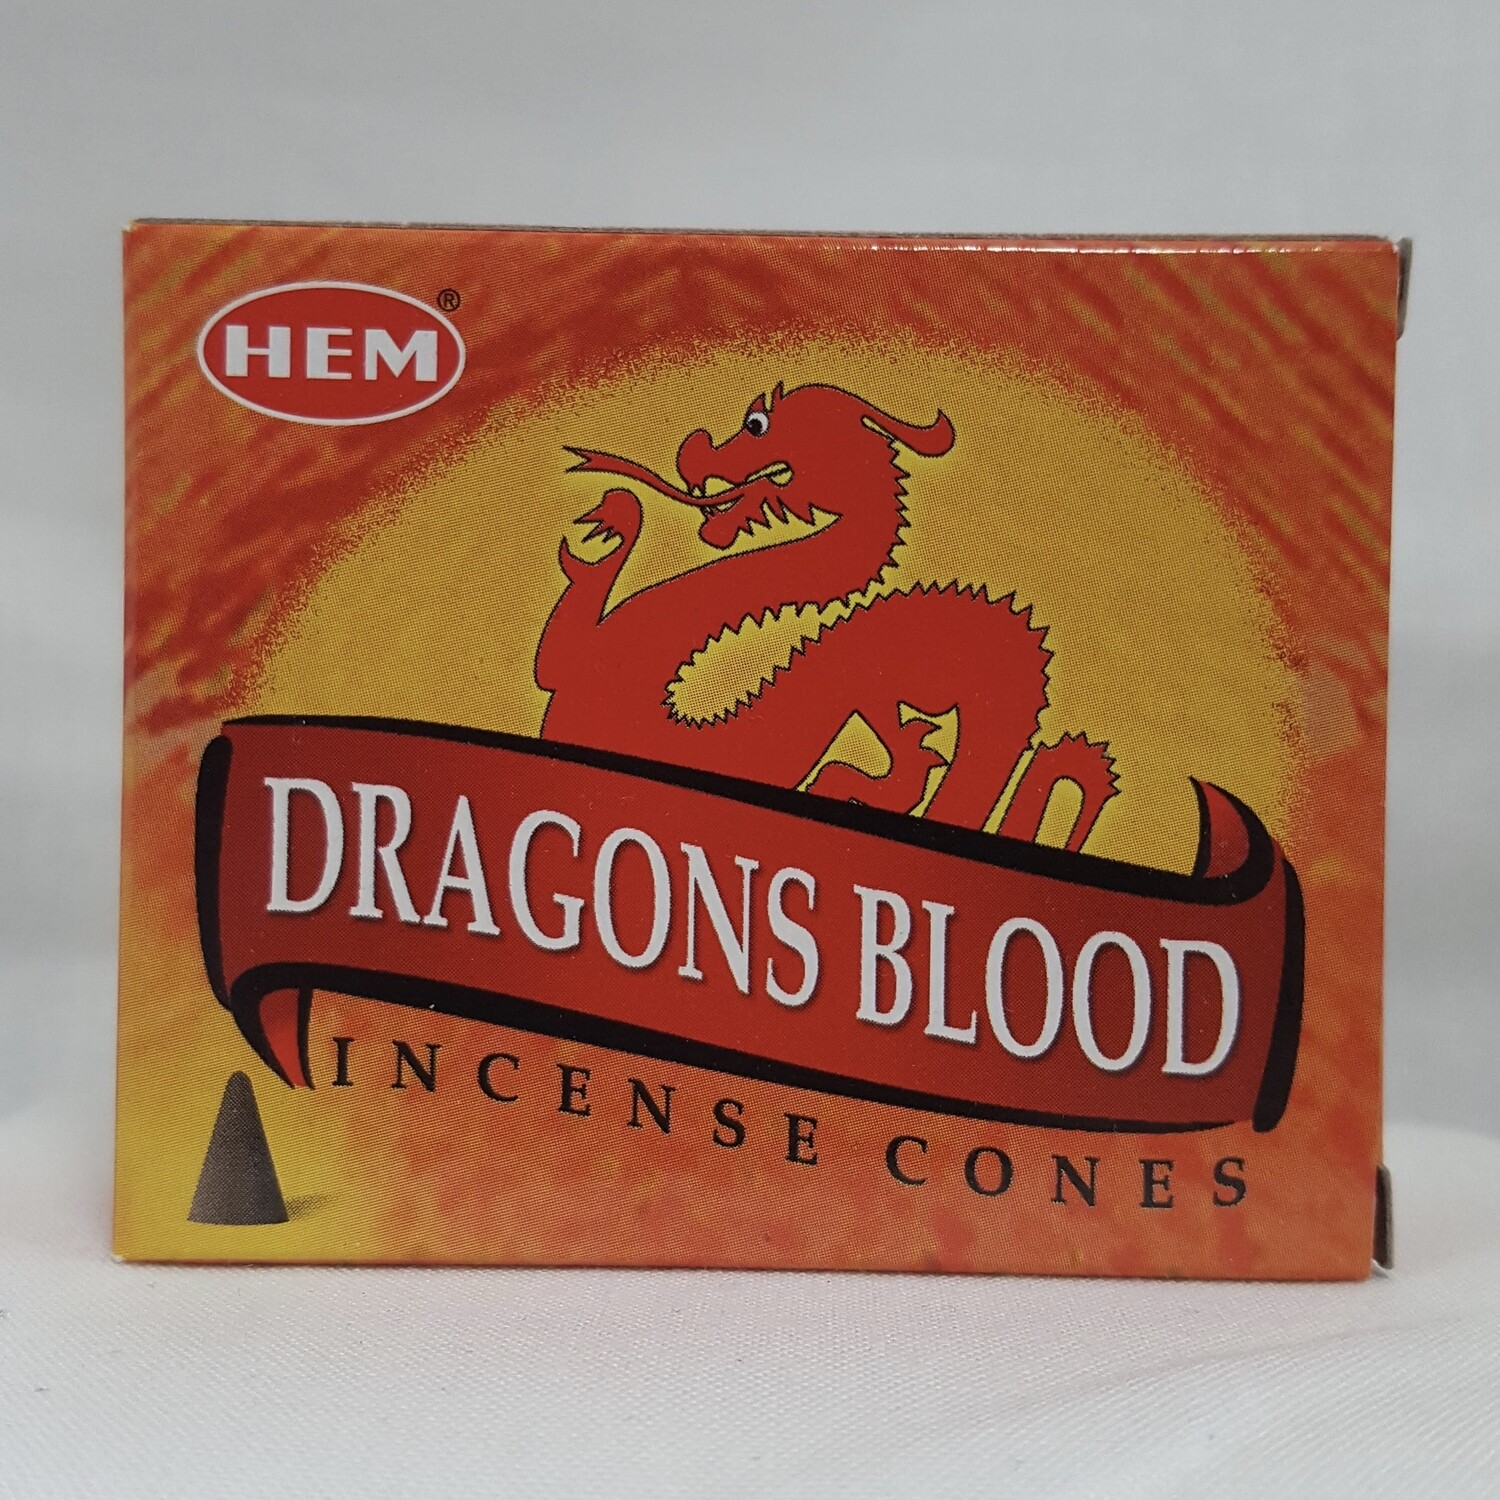 DRAGON'S BLOOD HEM CONES